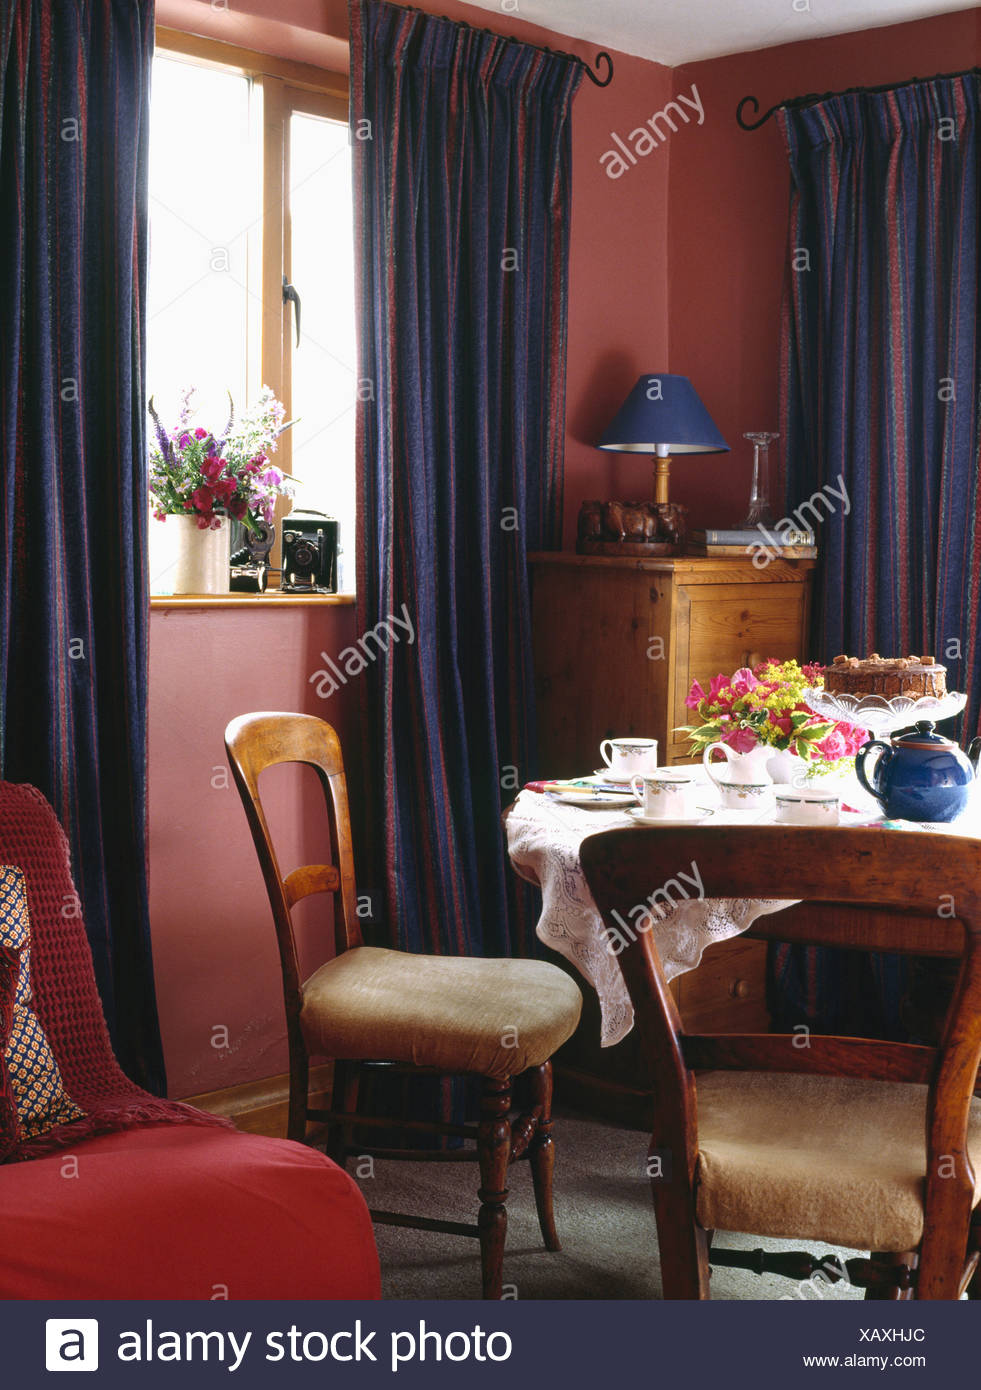 Dark Blue Curtains And Antique Chairs In Small Red Country Dining Room With Teaset On The Table Stock Photo Alamy